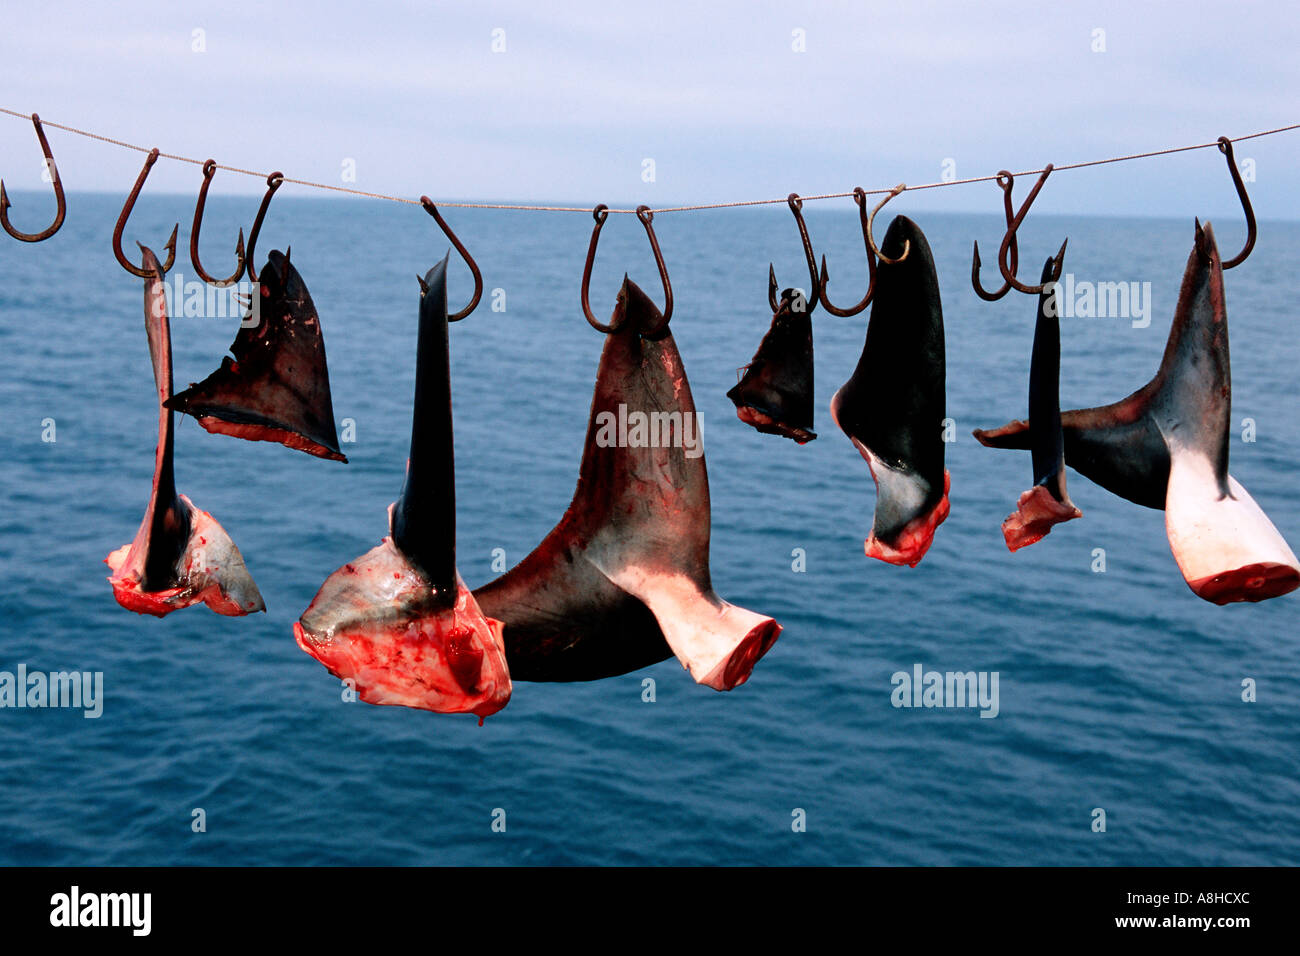 Shark finning is one of the world s most destructive fisheries Sharks are killed needlessly and their fins are collected for shark fin soup Baja California Mexico - Stock Image